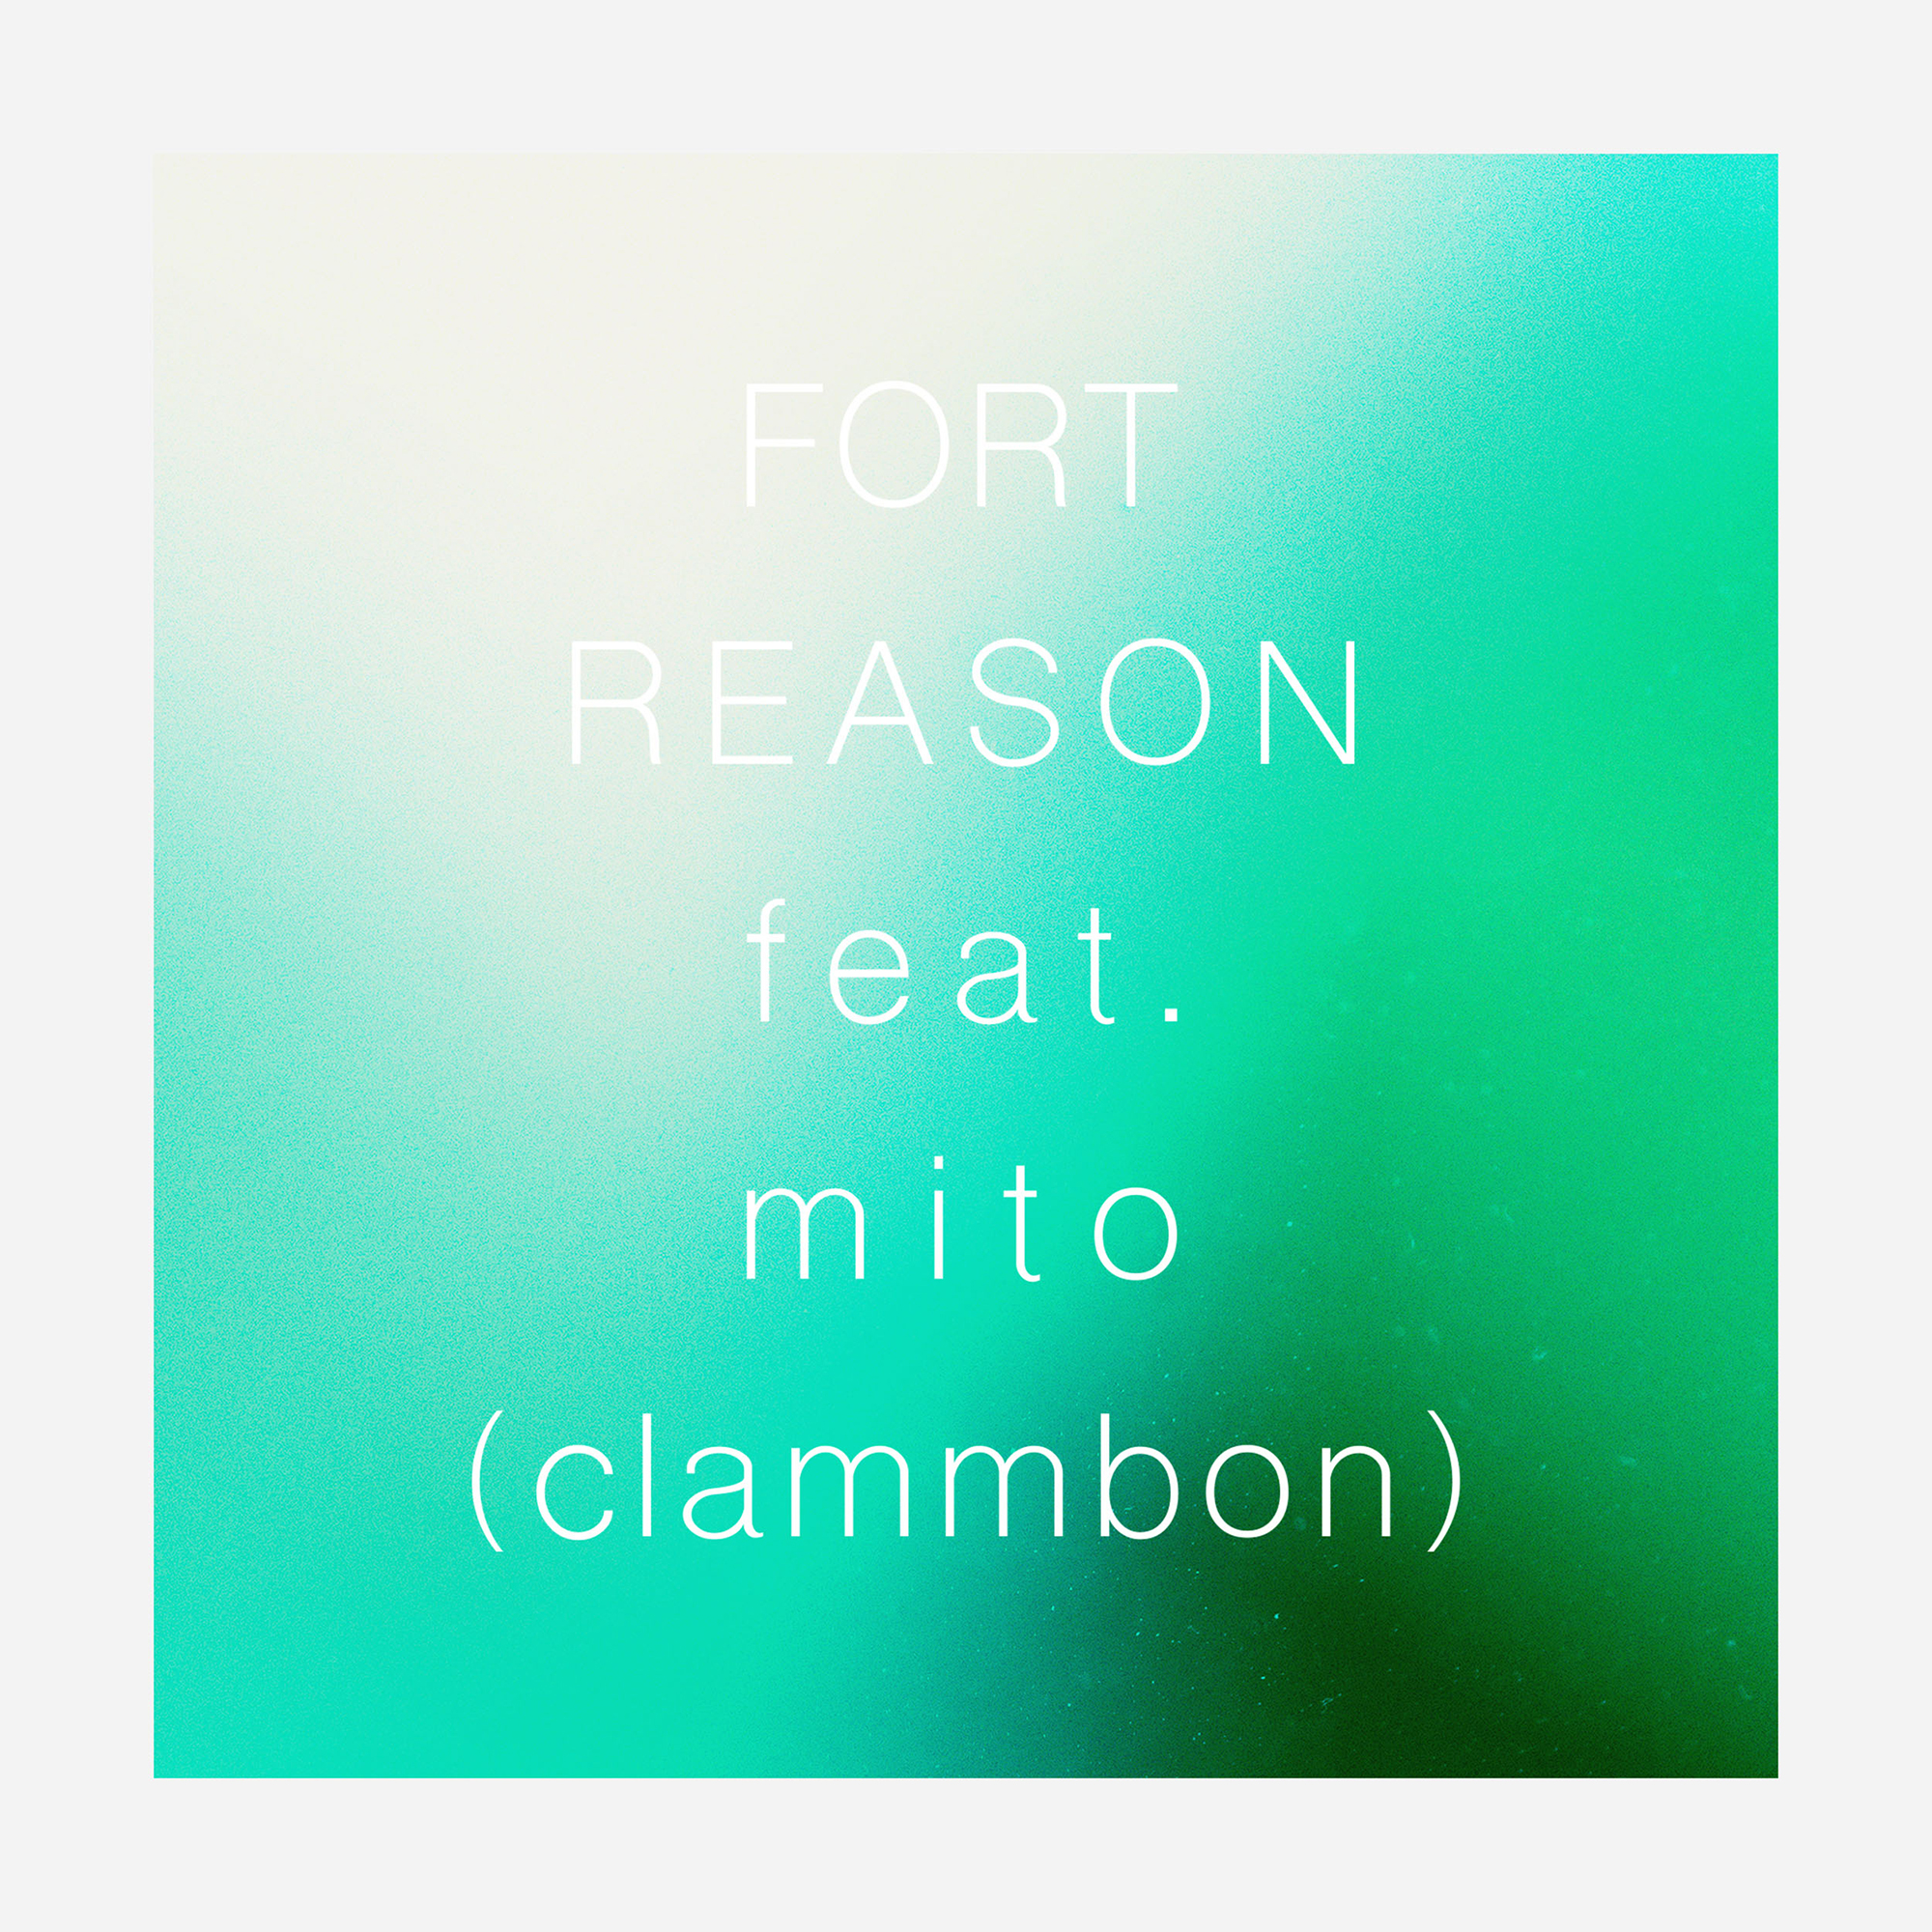 FORT New digital single 『REASON (feat.mito [clammbon])』